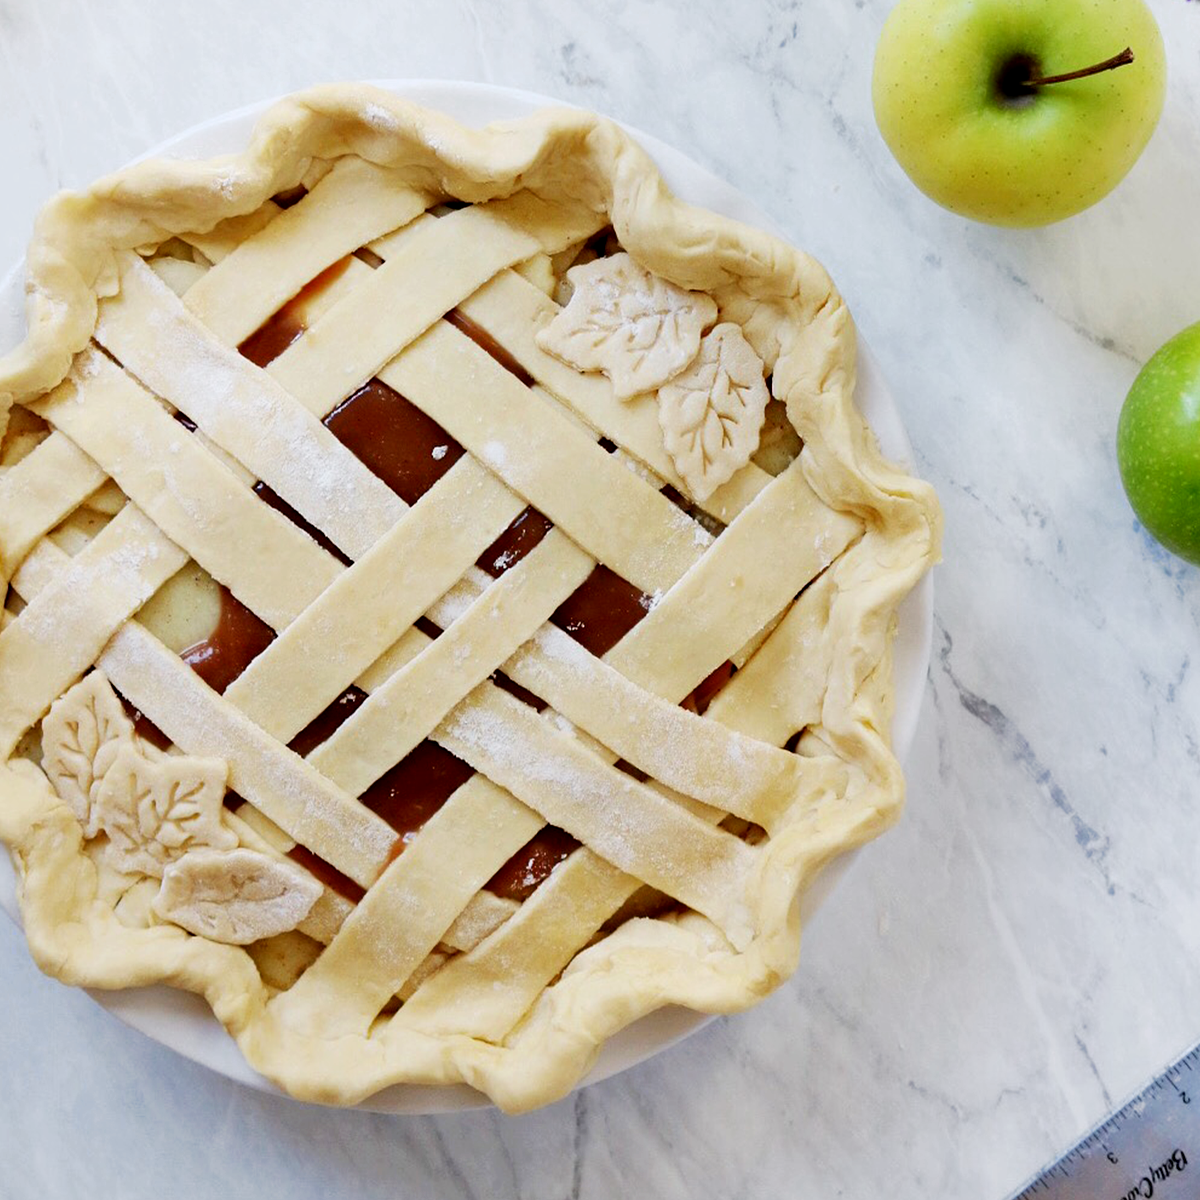 10 Fall Pie Crust Ideas - pies before guys